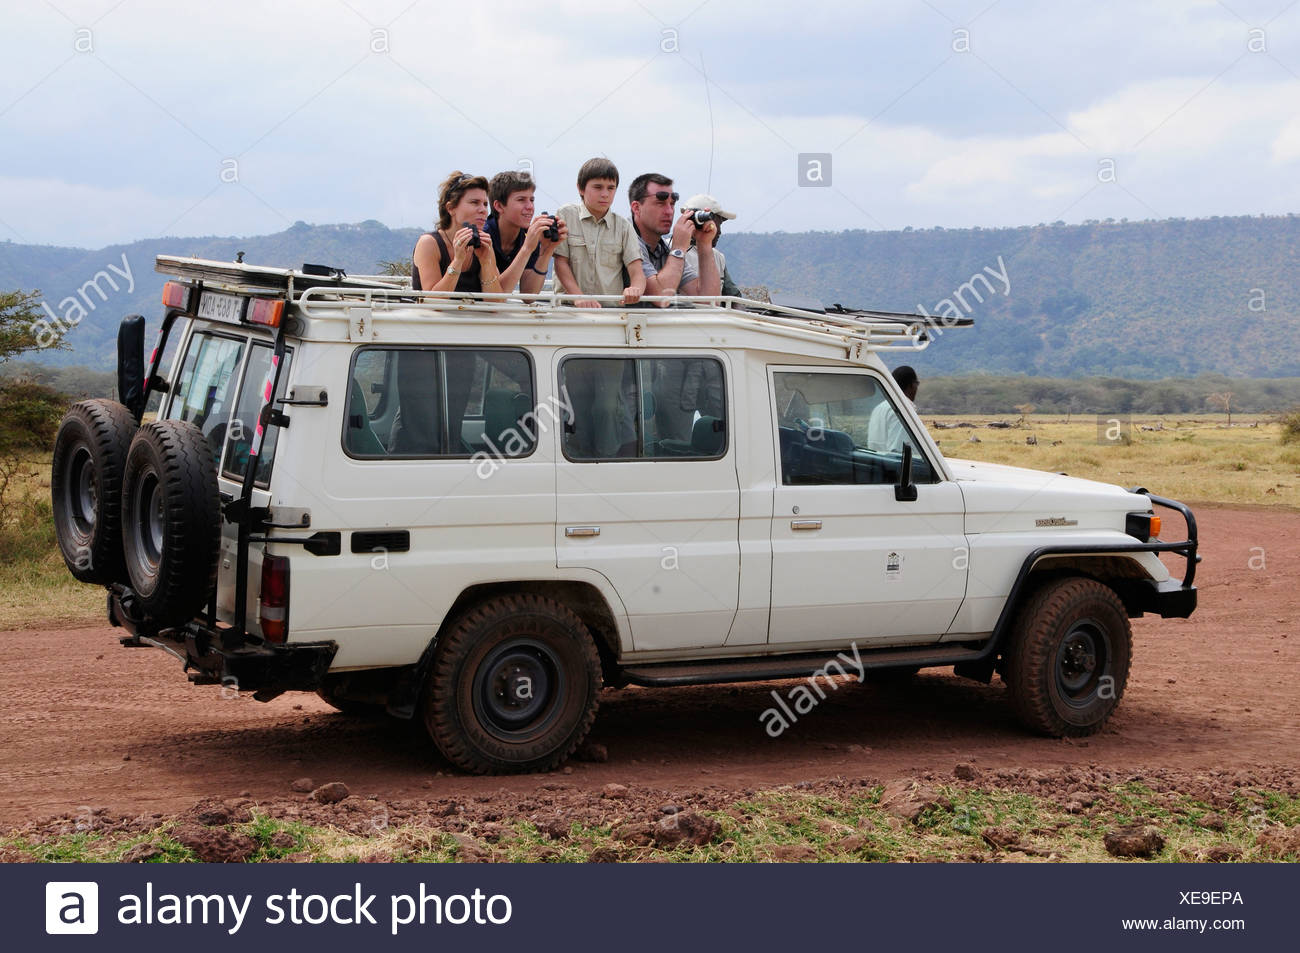 Tourists on safari in a four wheel drive vehicle, Lake Manyara National Park, Tanzania, Africa - Stock Image